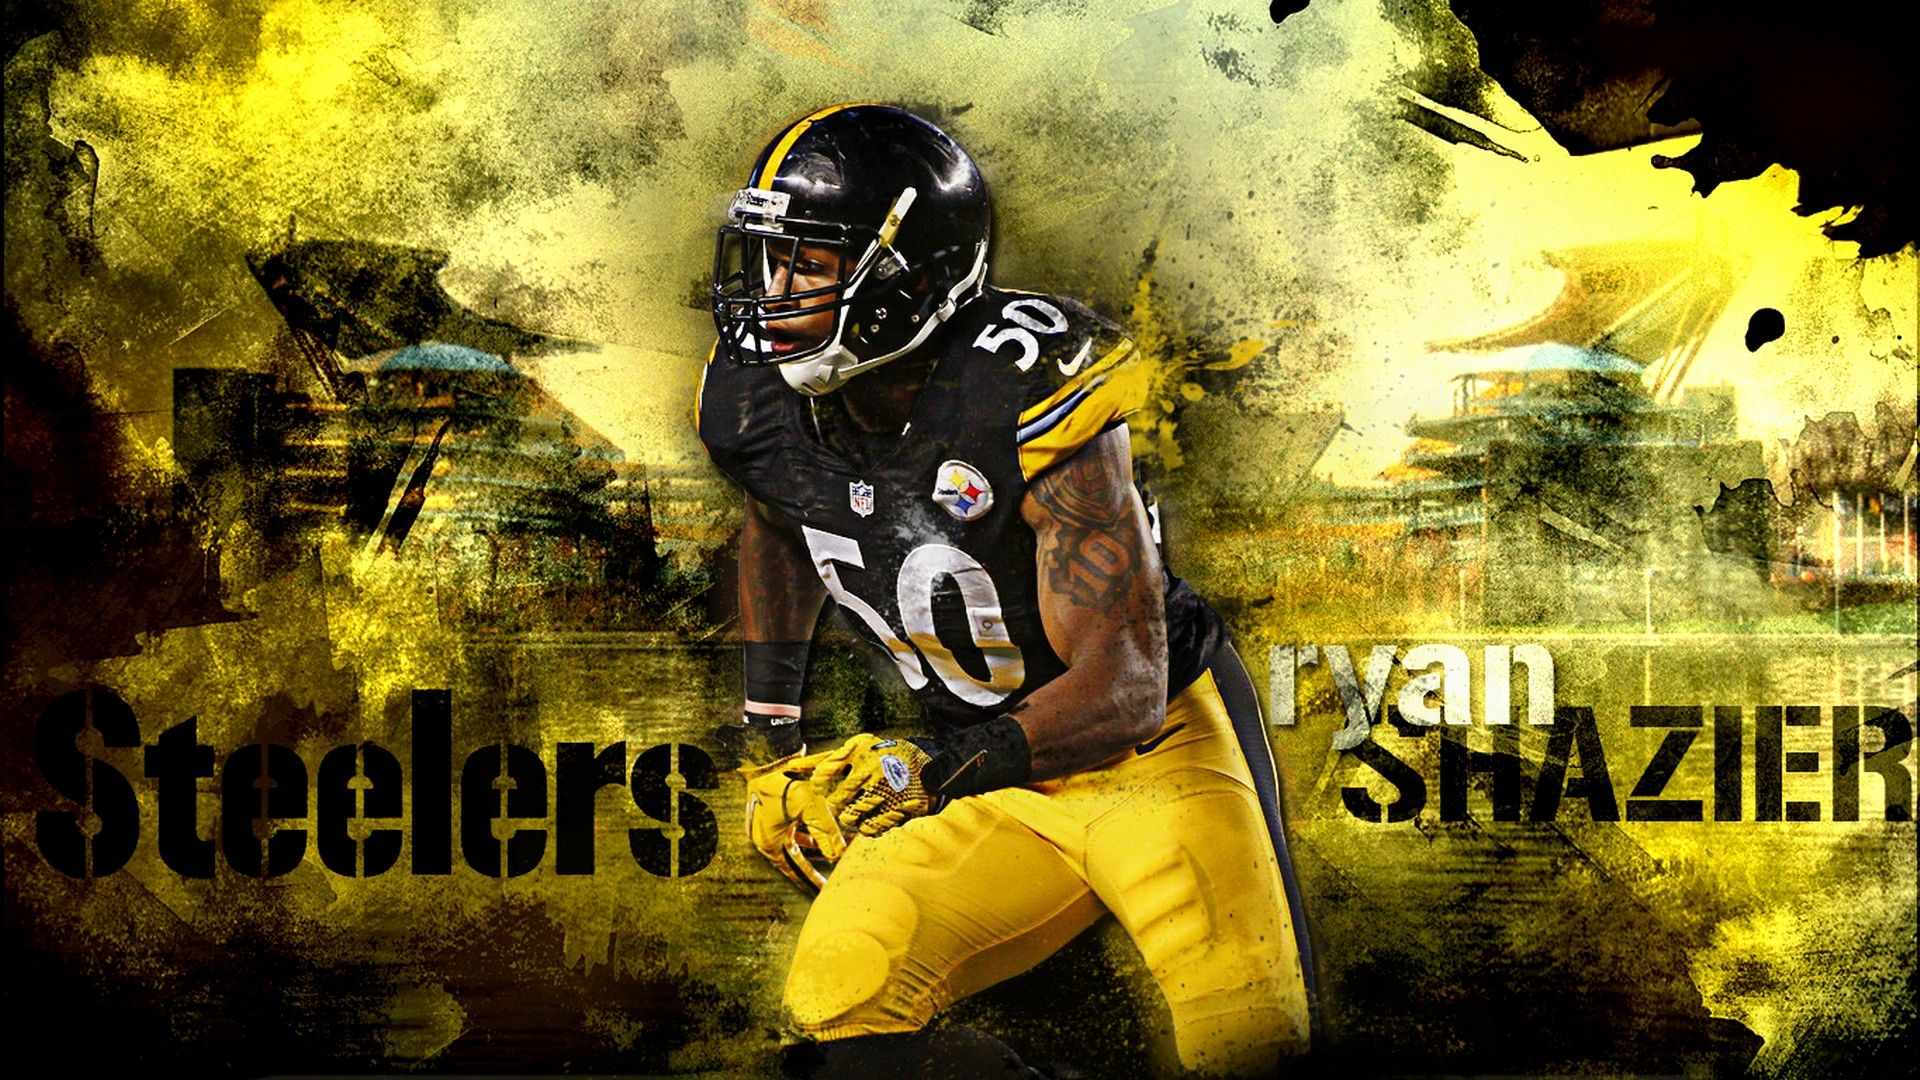 Nfl Wallpapers Steelers Super Healthy Recipes Pittsburgh Sports